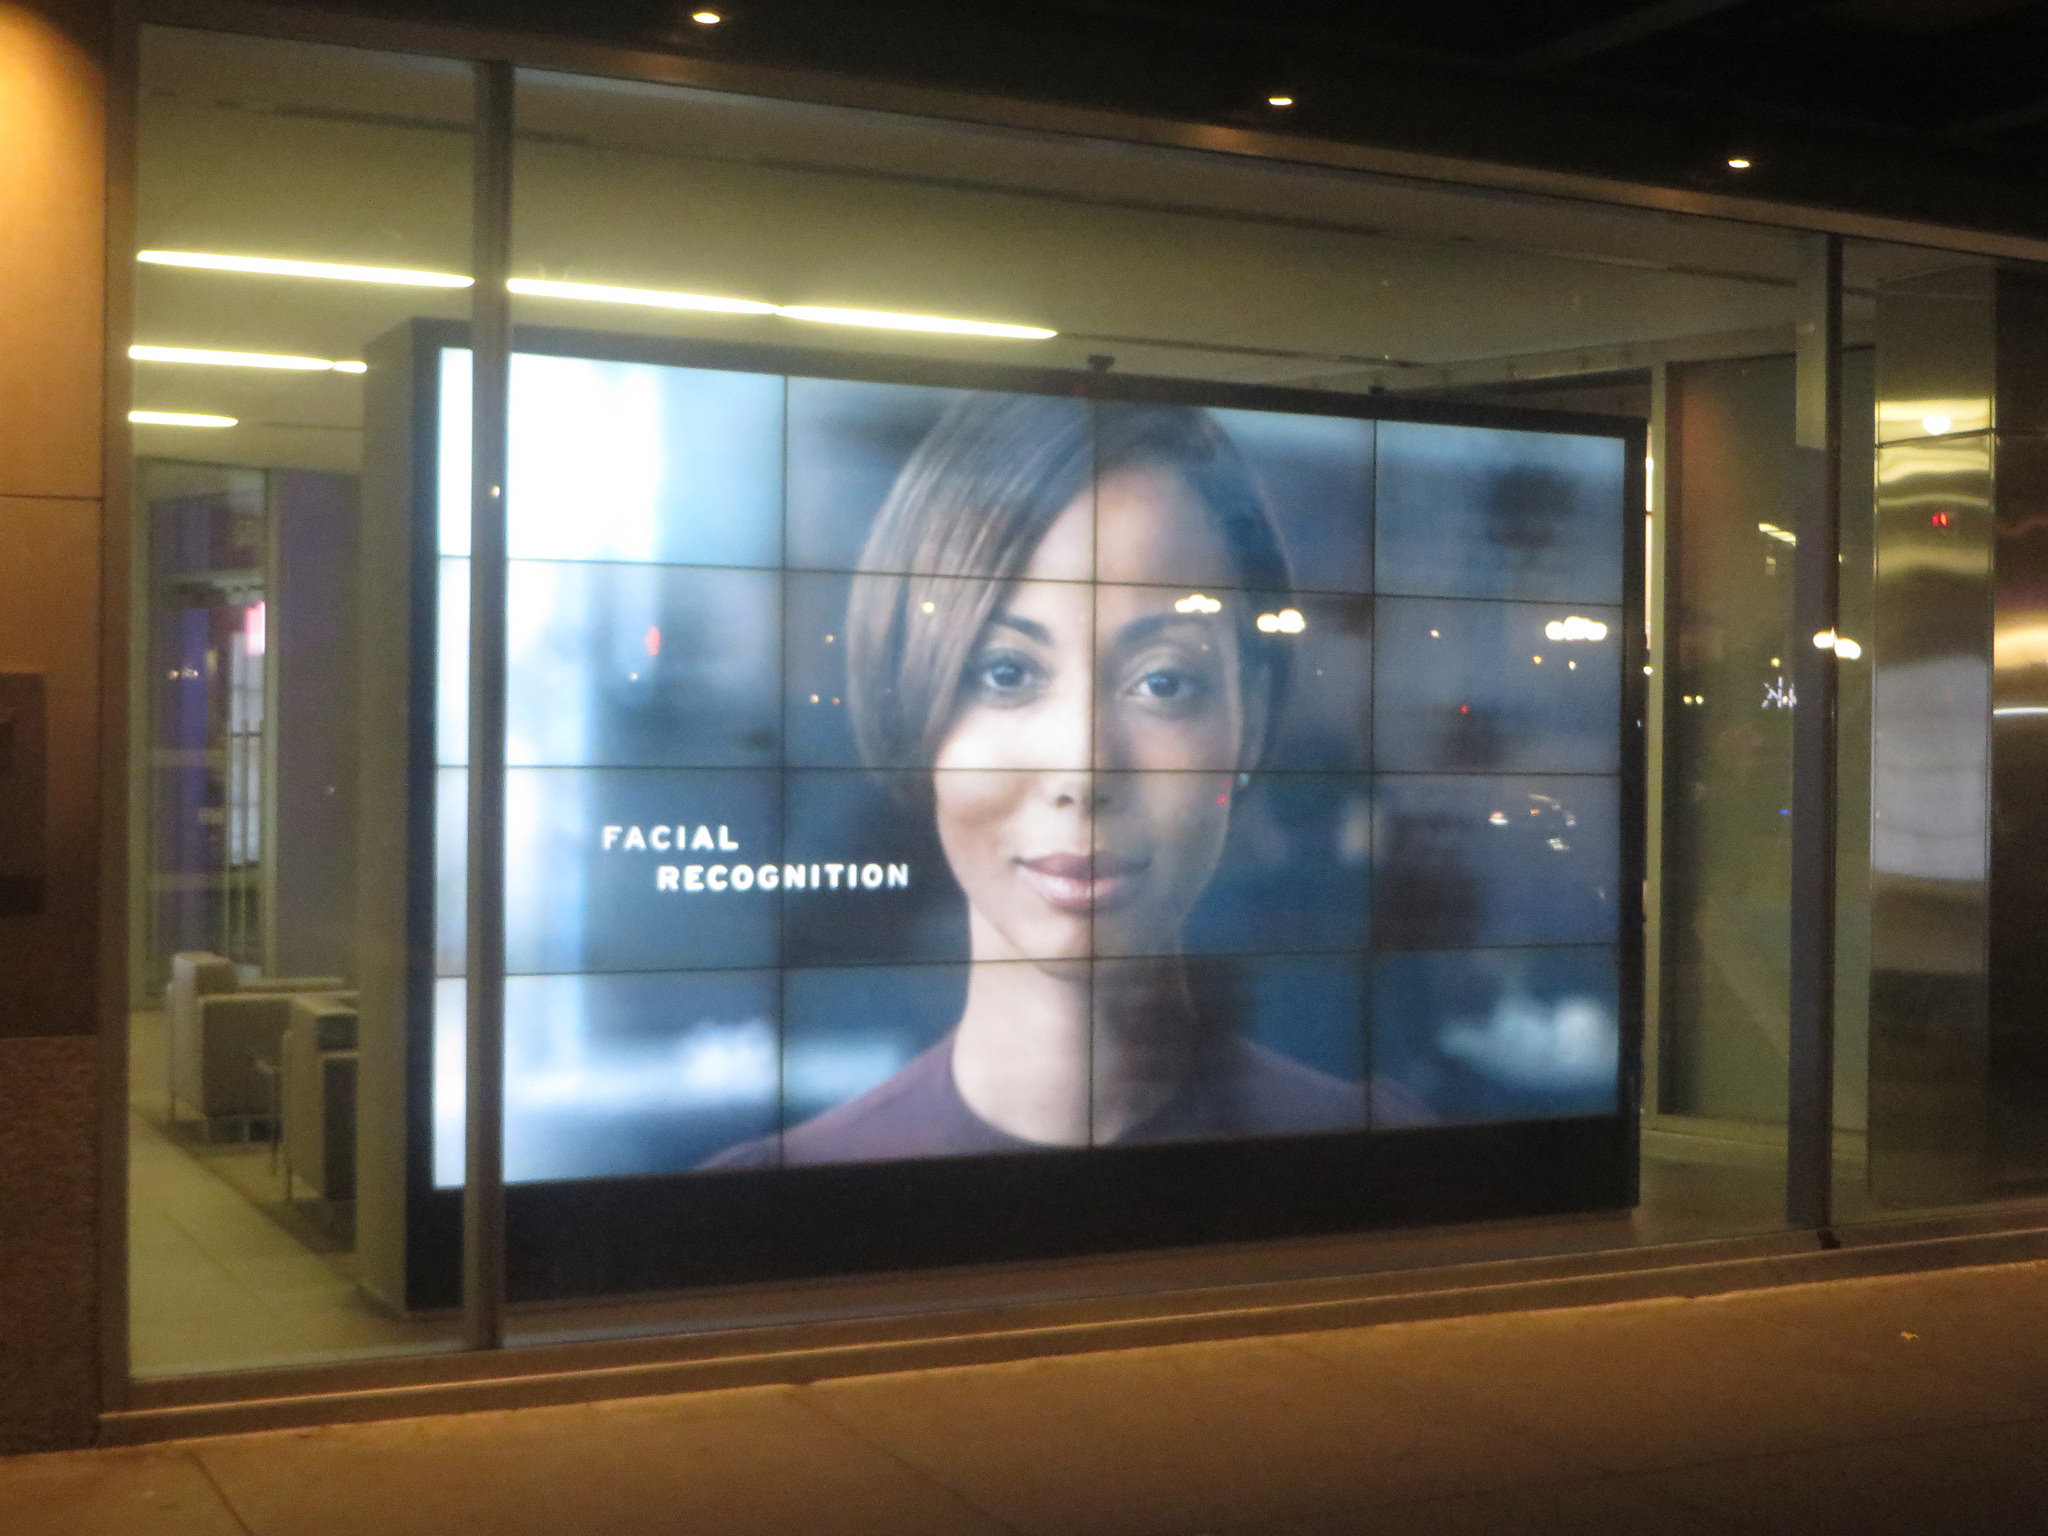 Digital signage market trends: Facial recognition